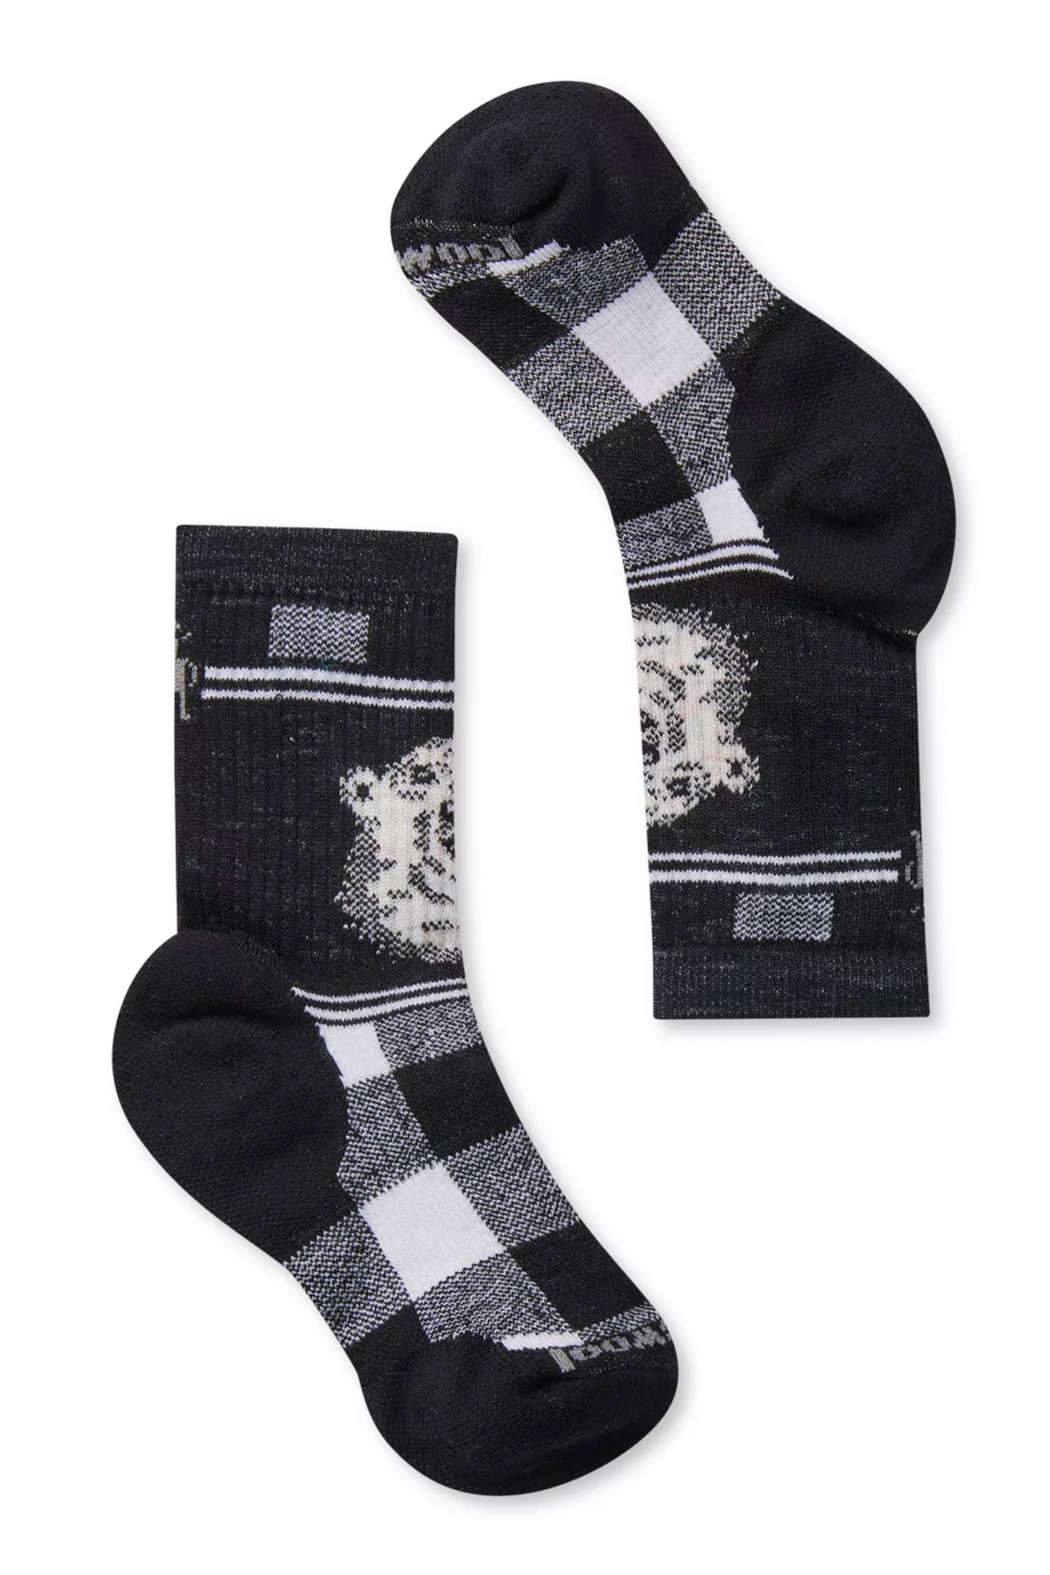 Smartwool Kids' Hike Medium Polar Bear Crew Socks - Main Image